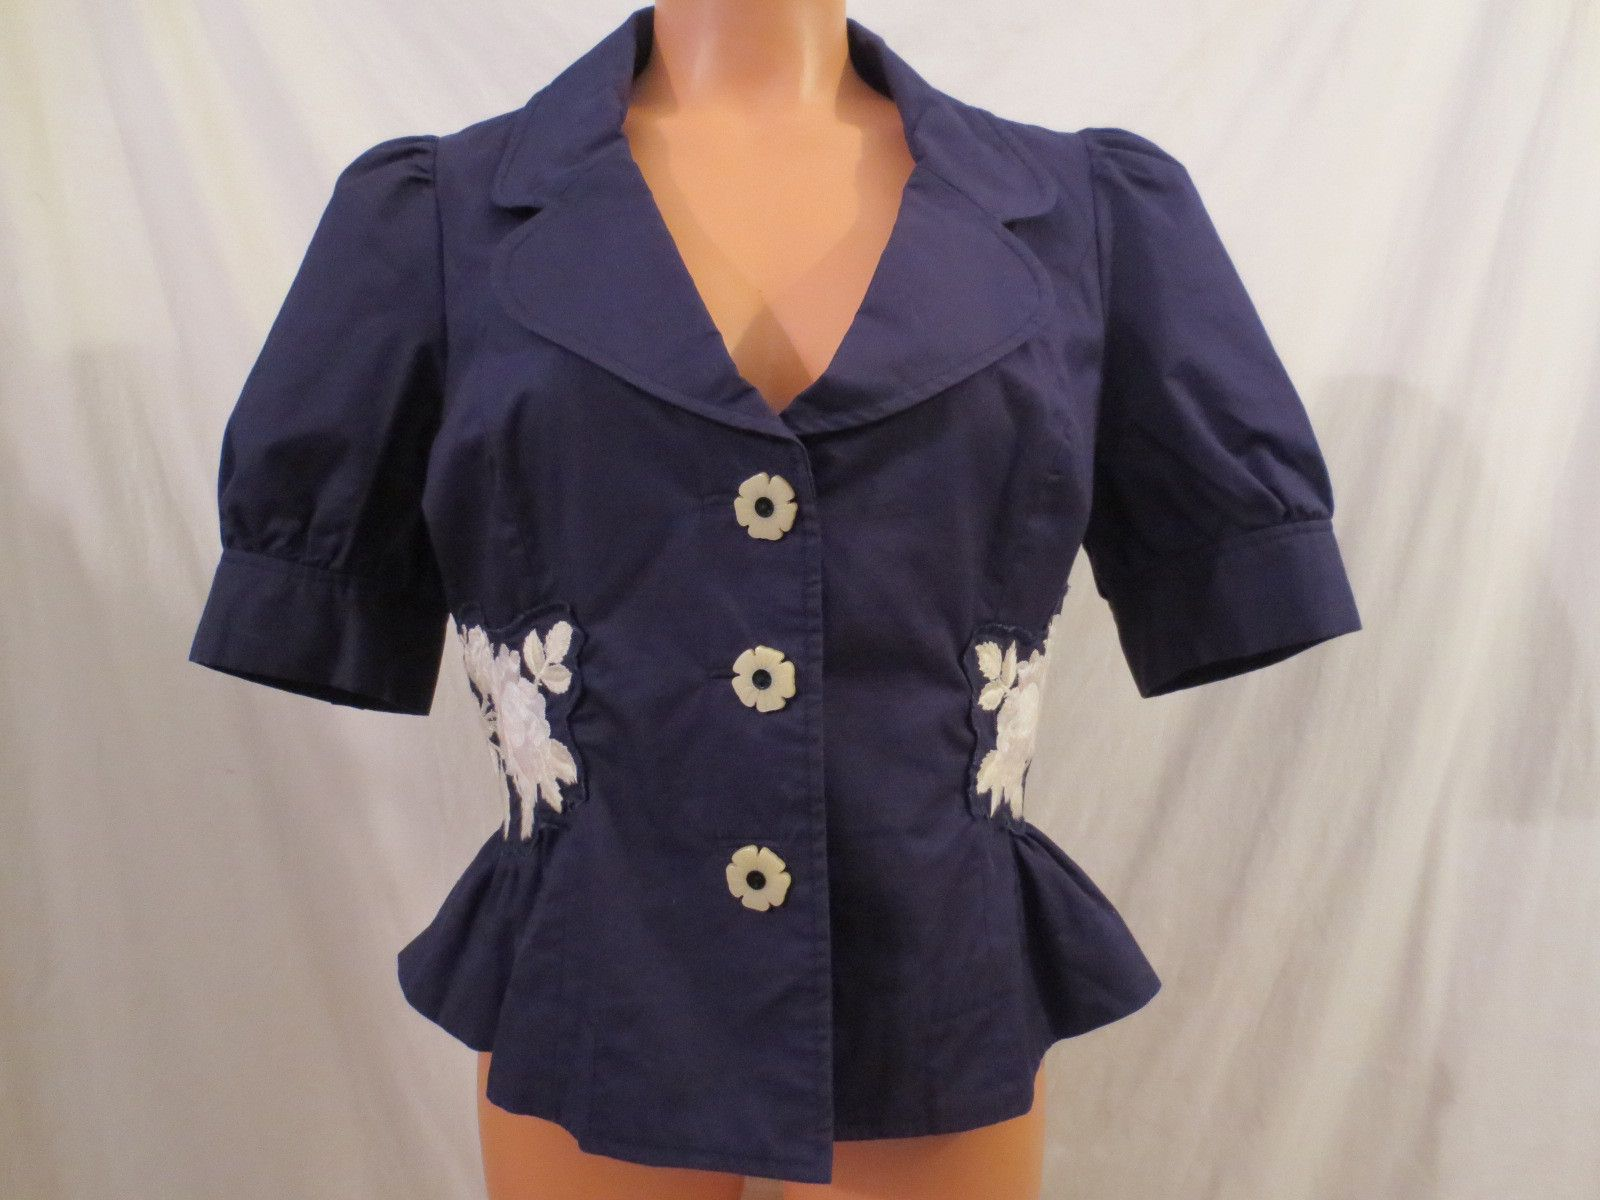 ELEVENSES #Anthropologie Summer Jacket - $19.99 at JOHNNY BOMBSHELL